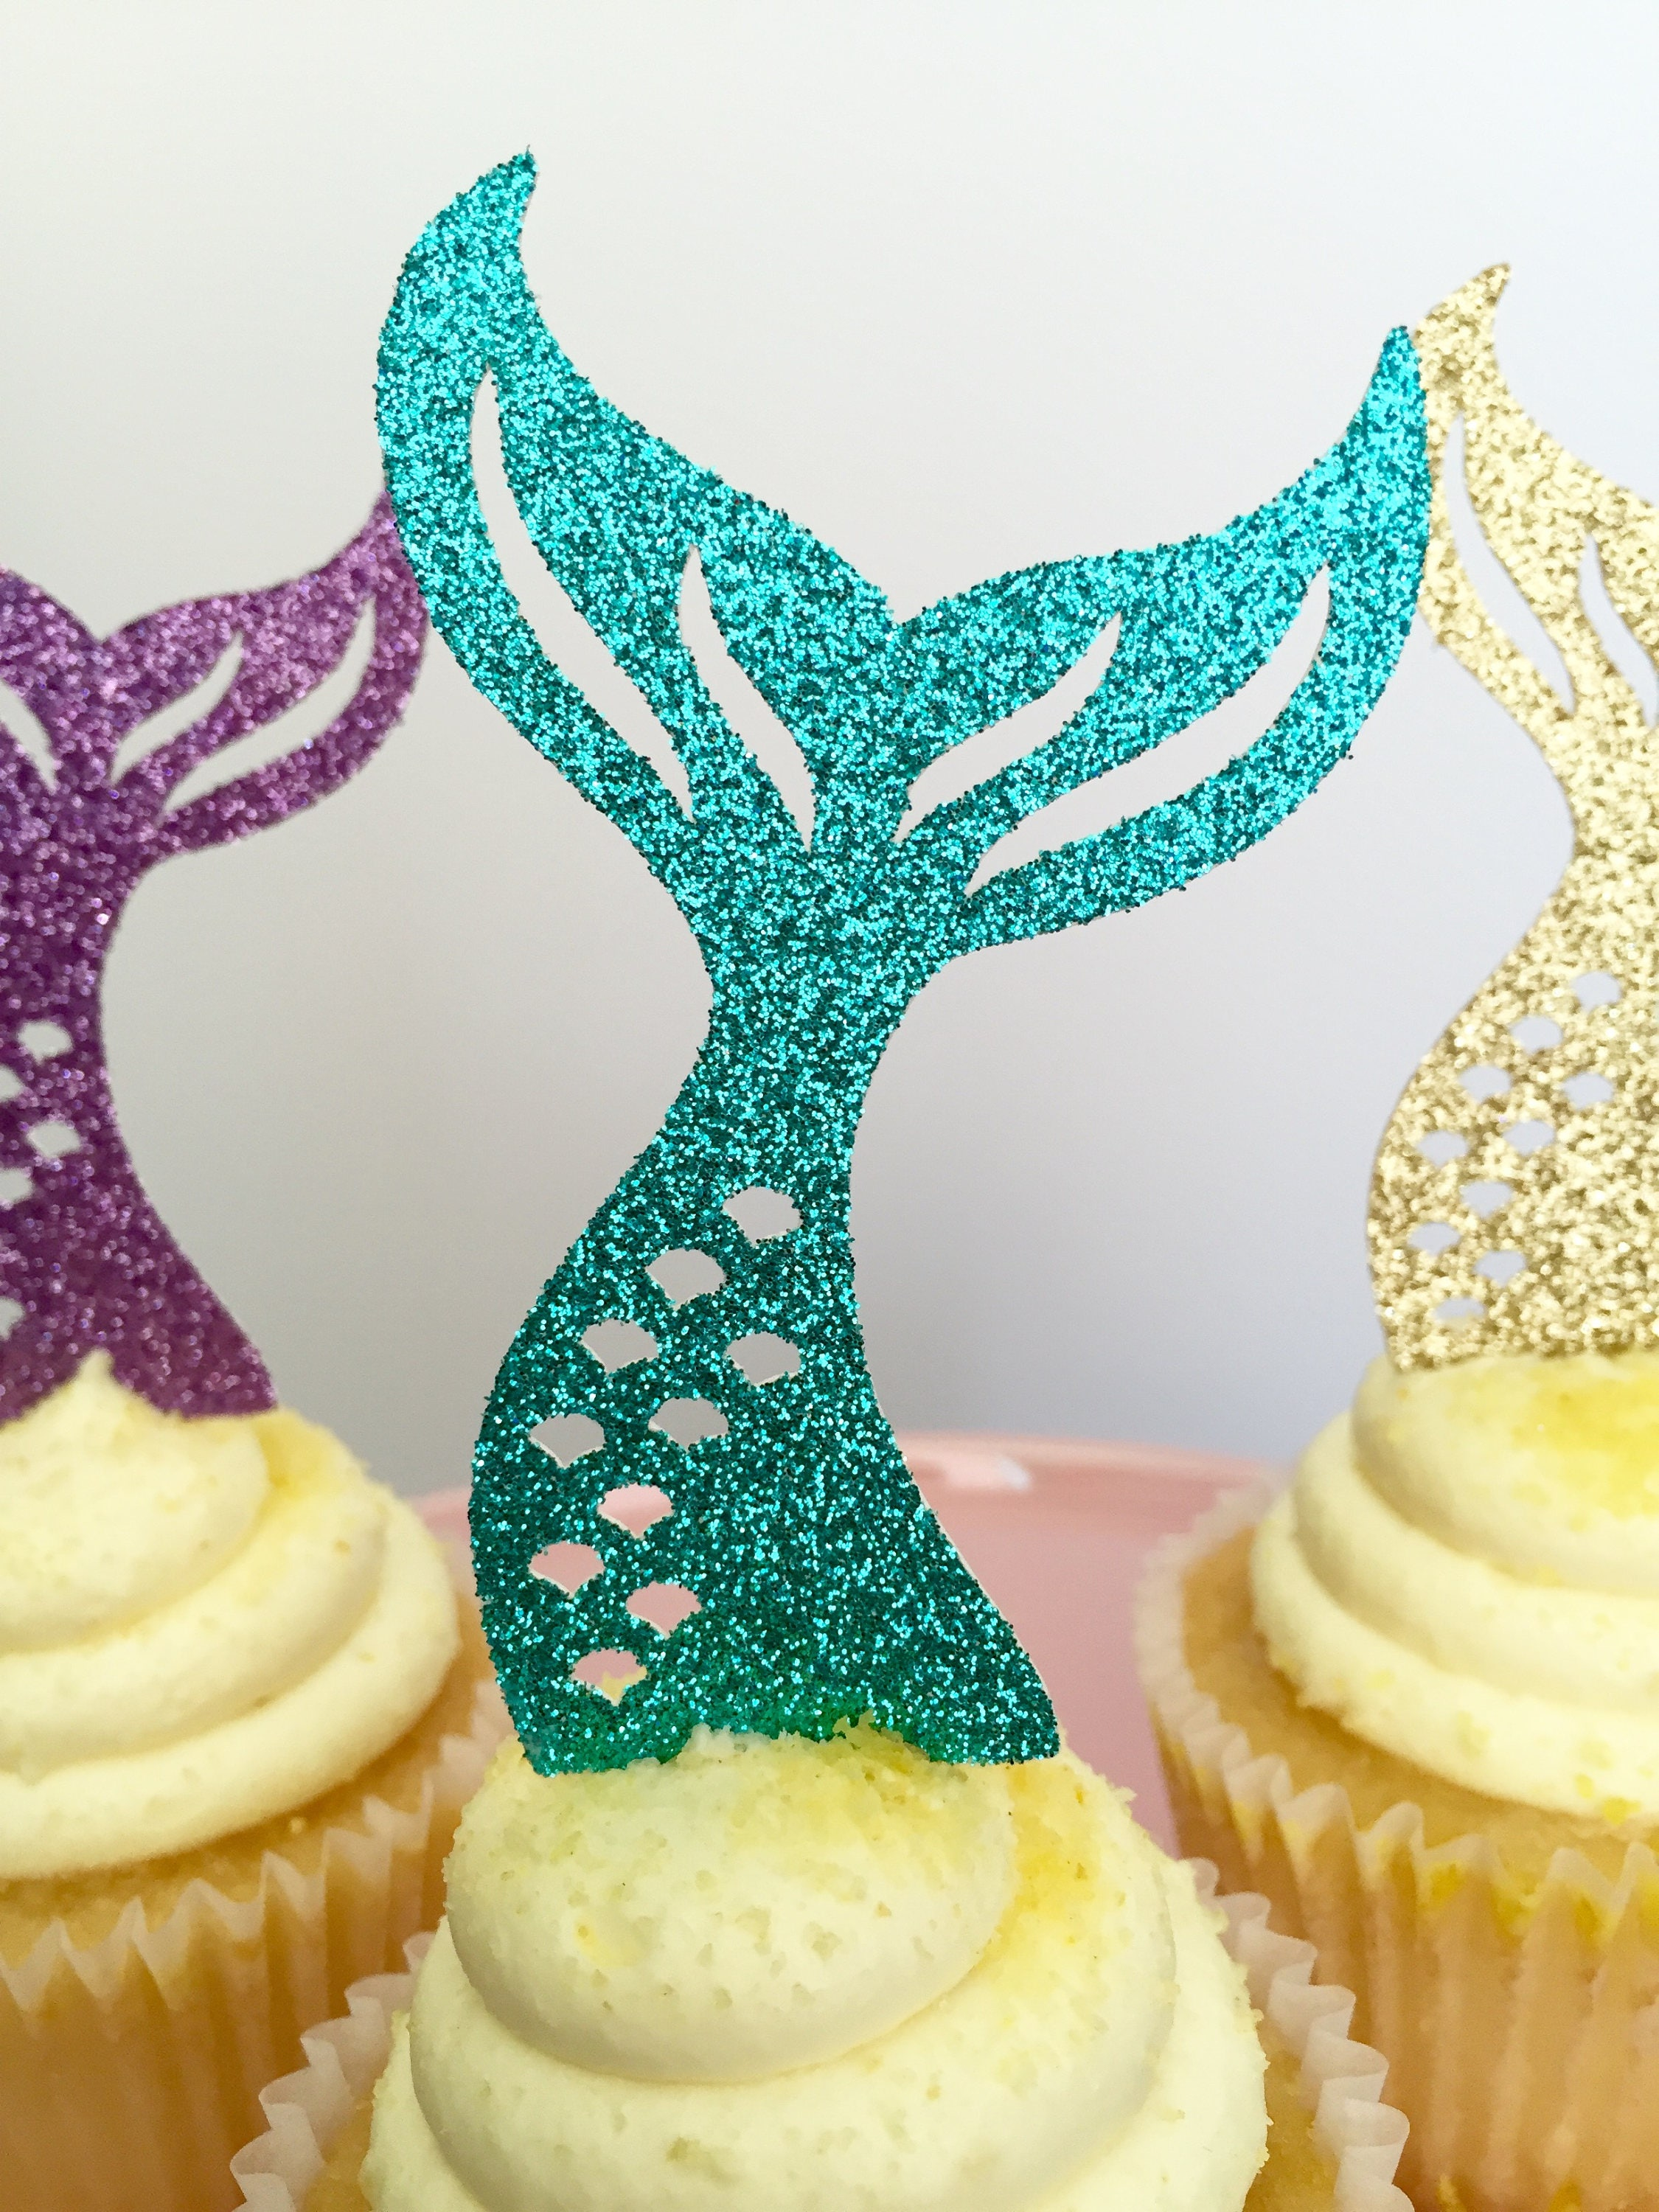 Mermaid Cupcakes Mermaid Tail Cupcakes Mermaid Cupcake Toppers